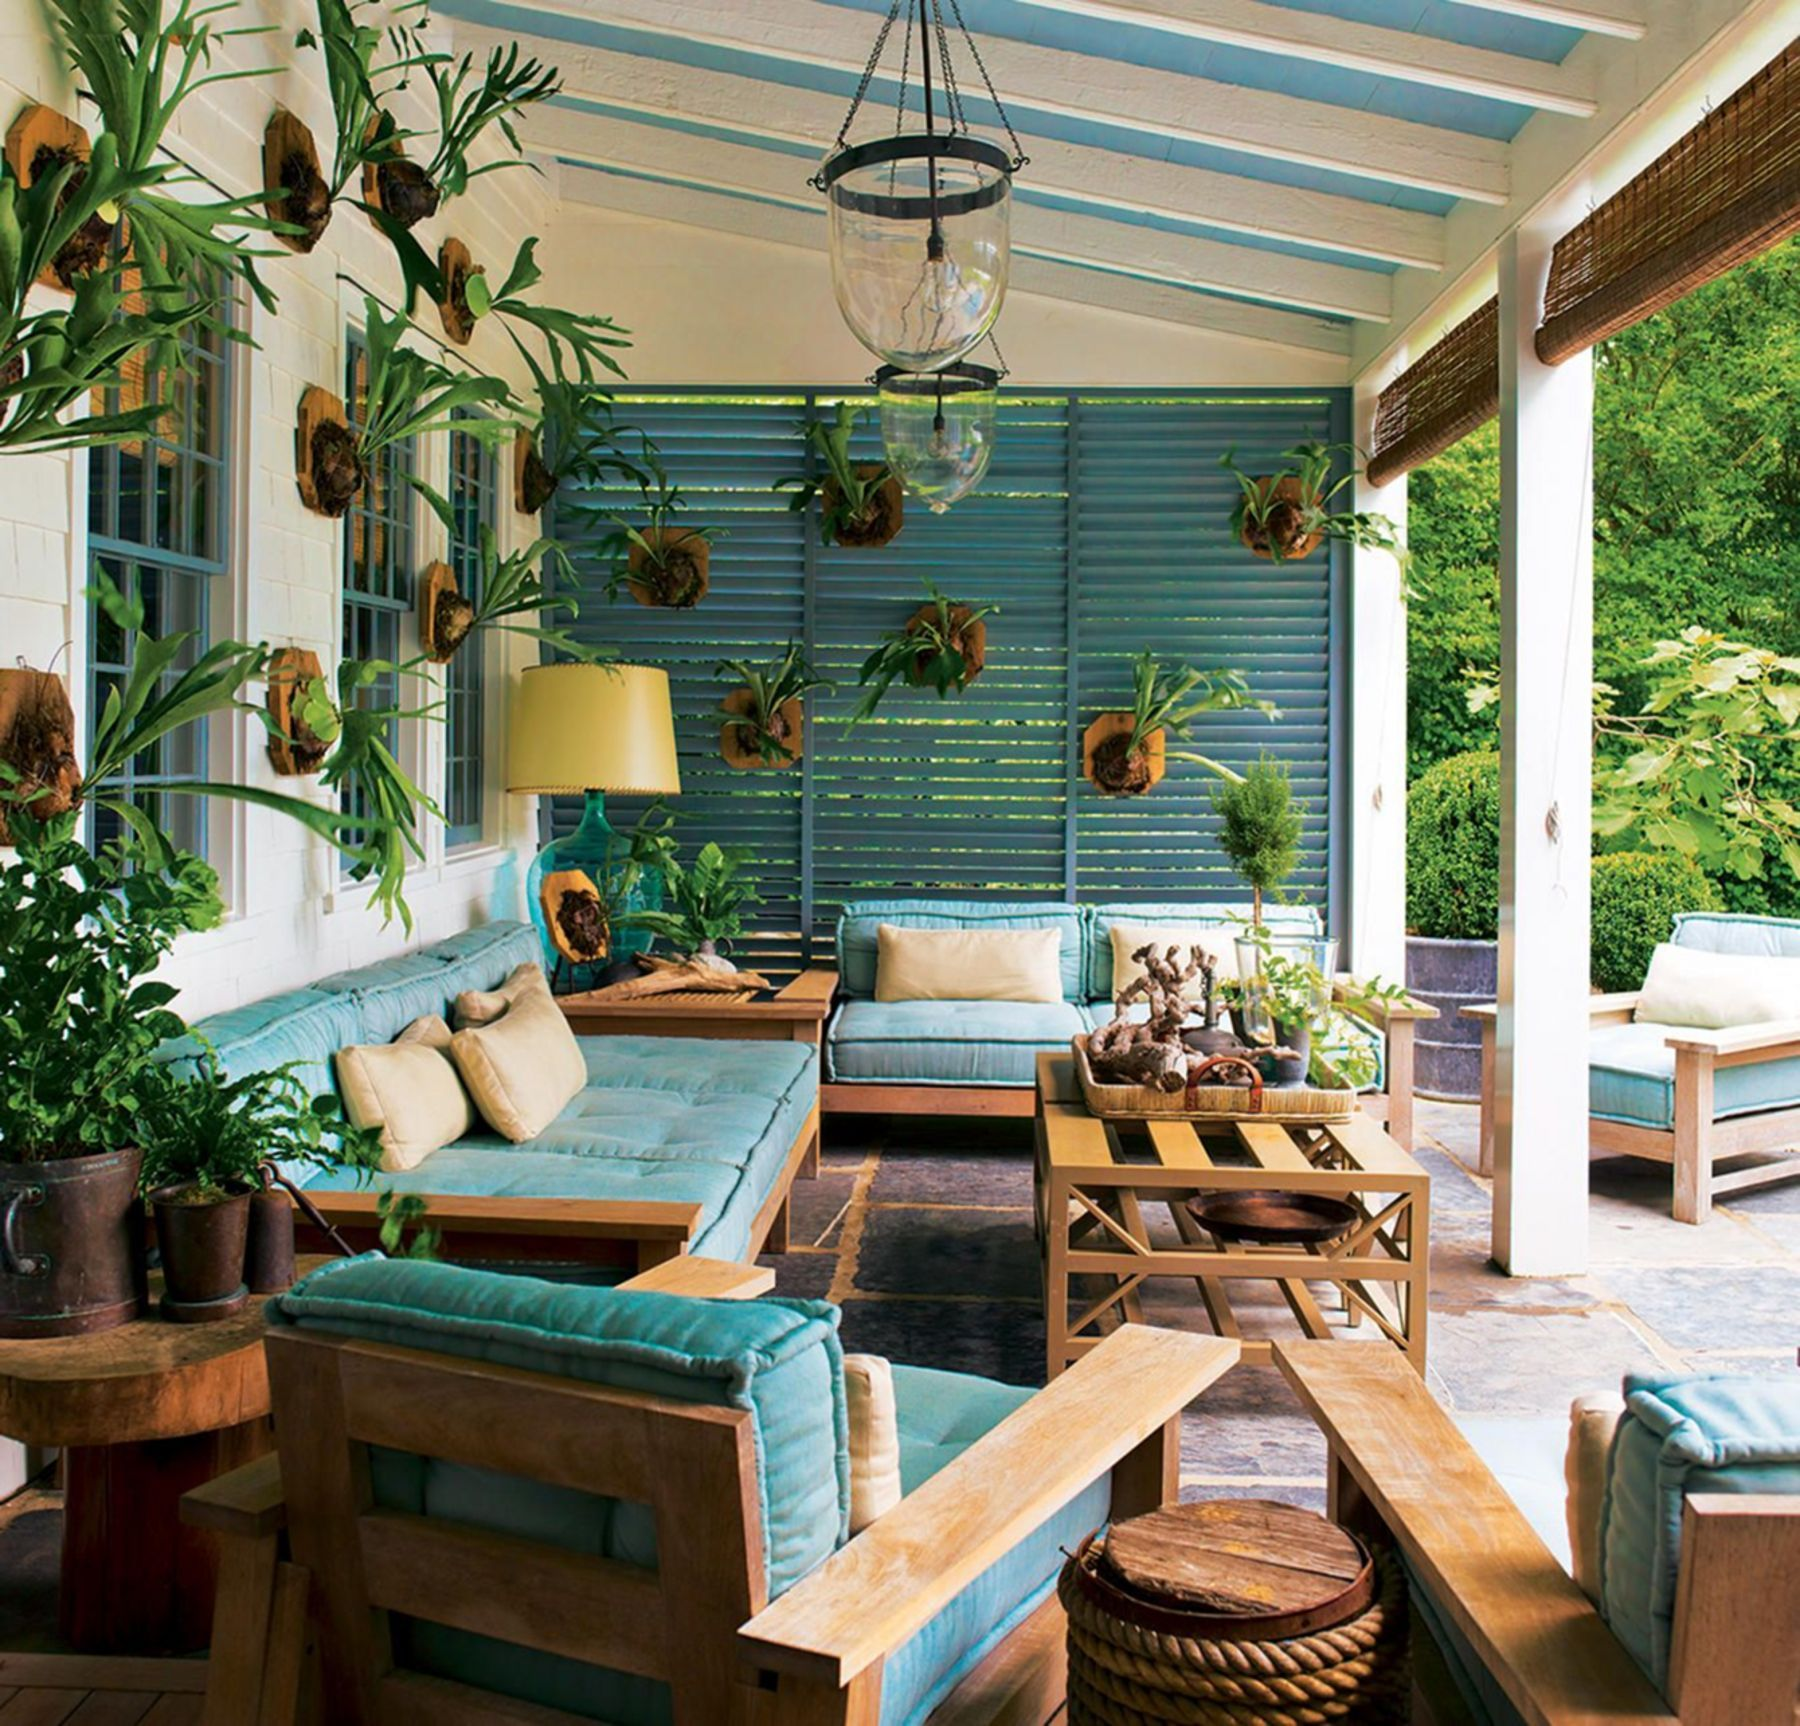 Top 12 Stunning Outdoor Living Room Design Ideas That Will Make Your Guest Cozy Outdoor Living Room Outdoor Living Rooms Quality Living Room Furniture